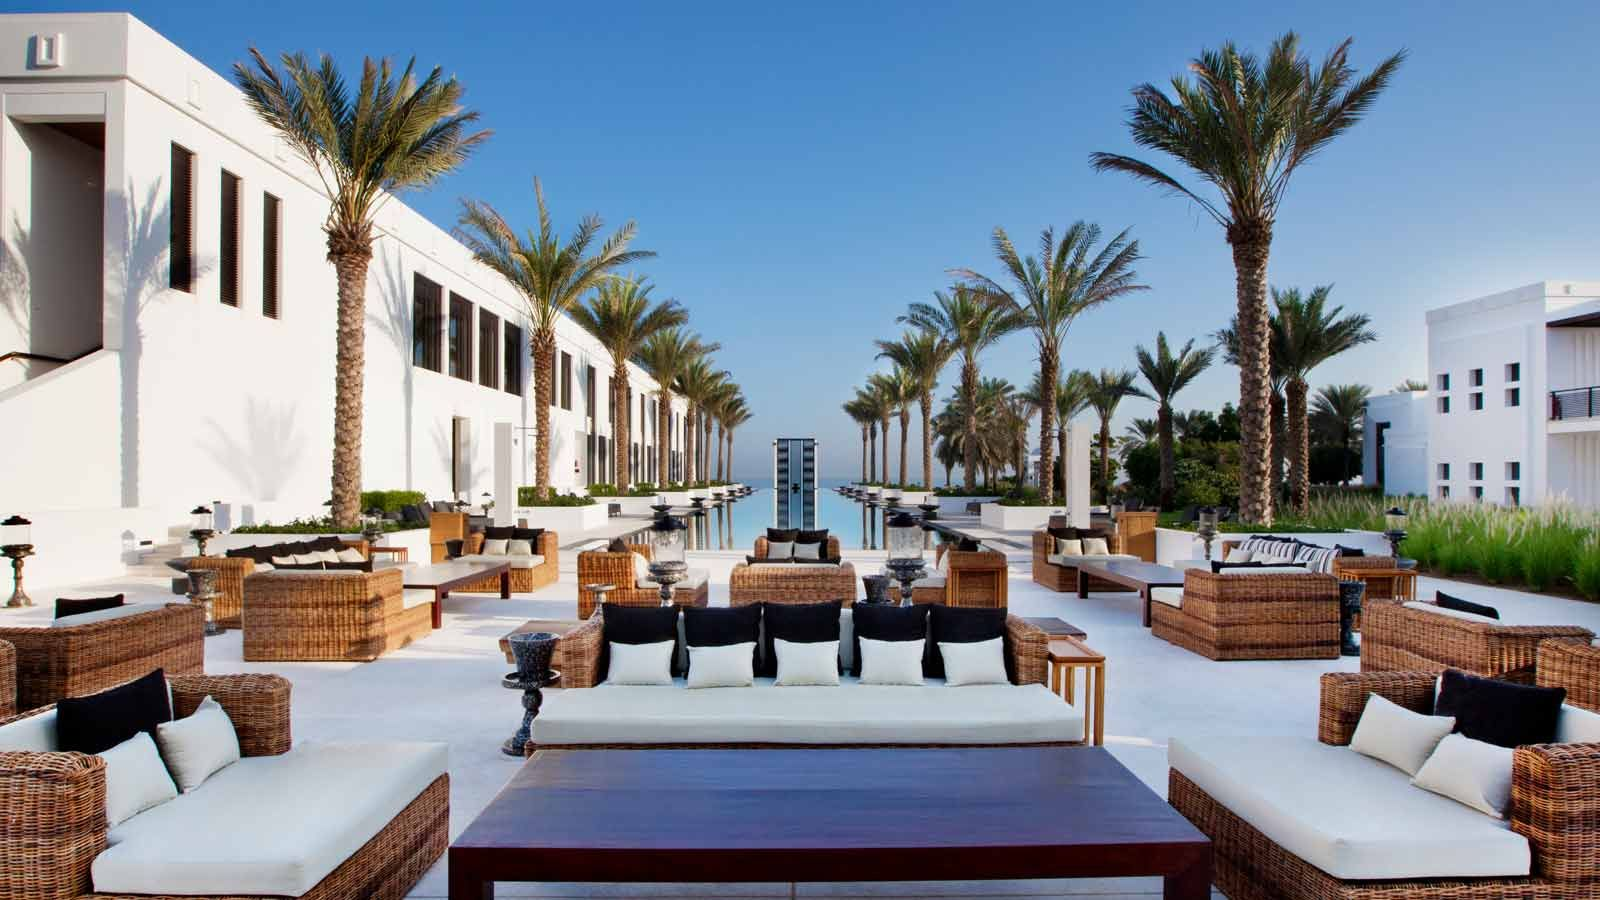 Luxury Hotel In Muscat Oman The Chedi Muscat Ghm The Chedi Muscat Chedi Hotel Oman Hotels